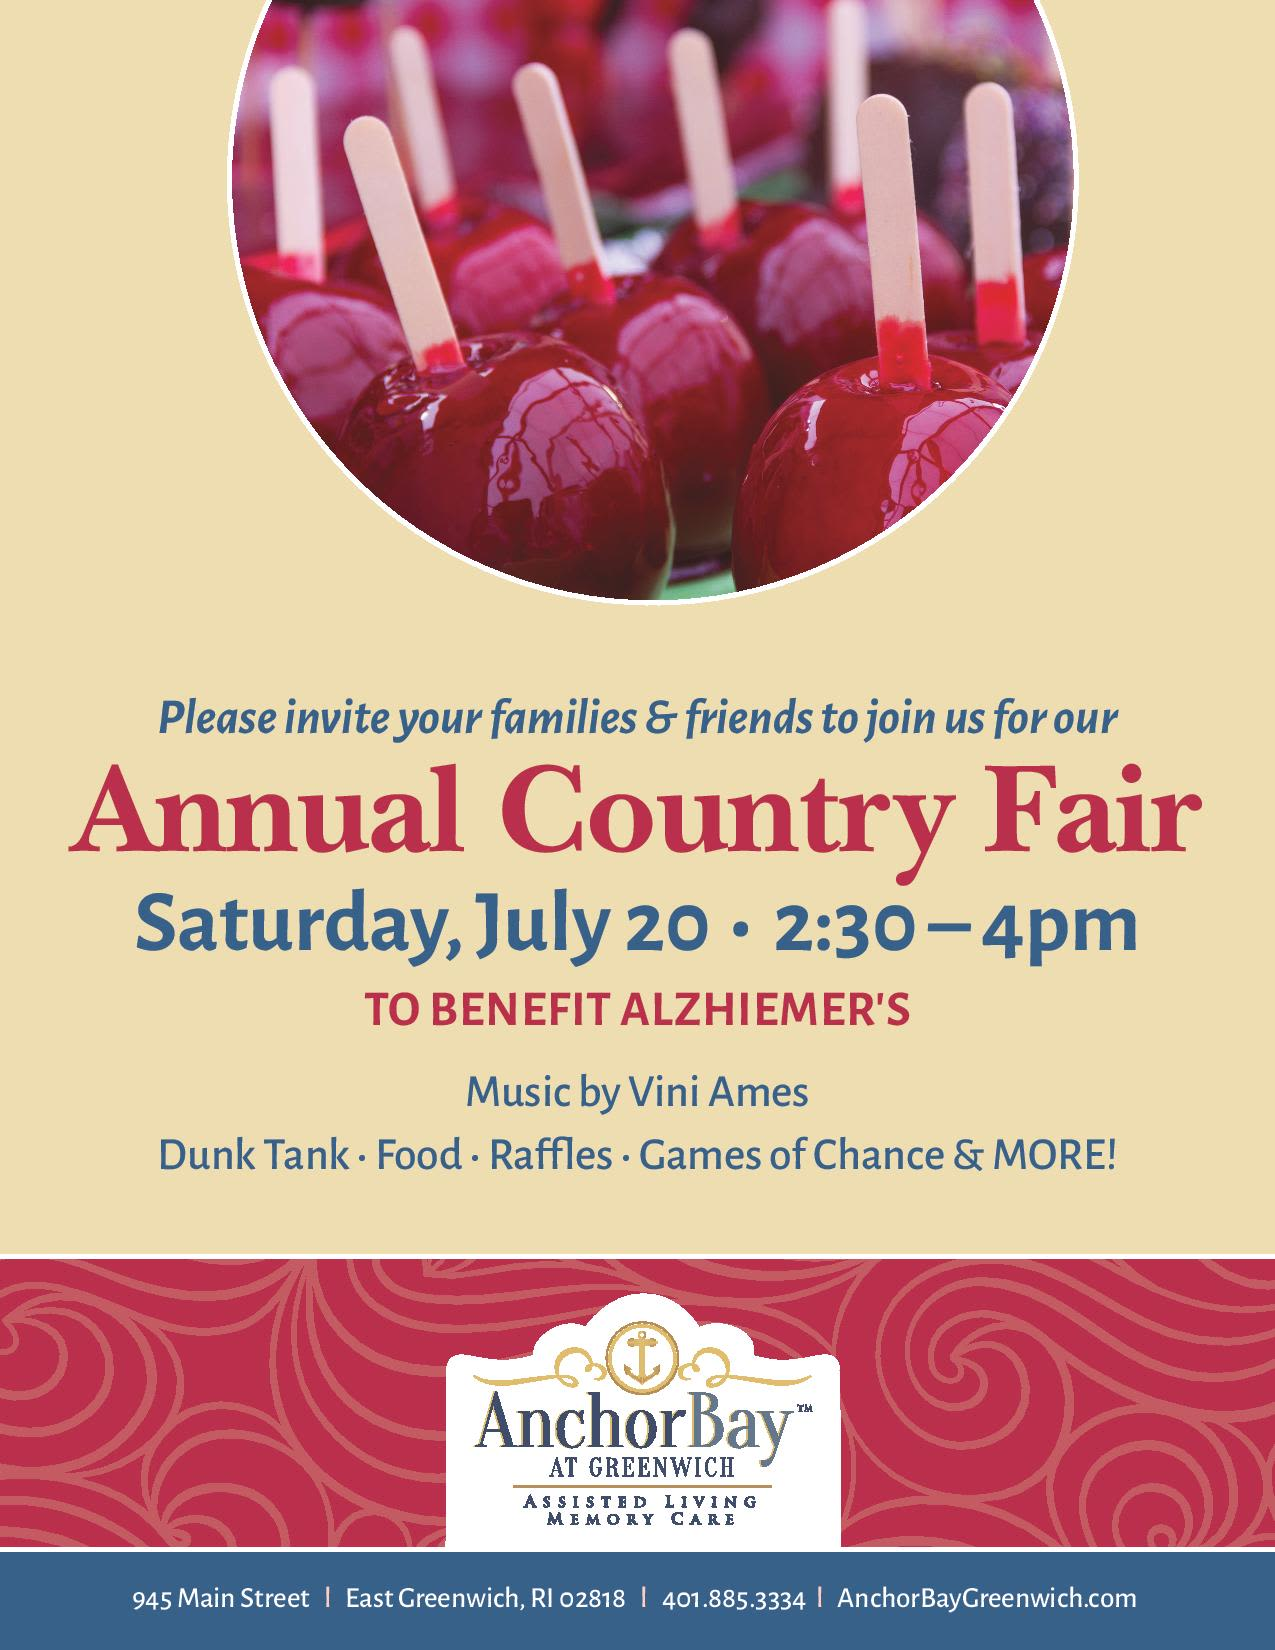 Check out the annual country fair near Anchor Bay at Greenwich in East Greenwich, Rhode Island